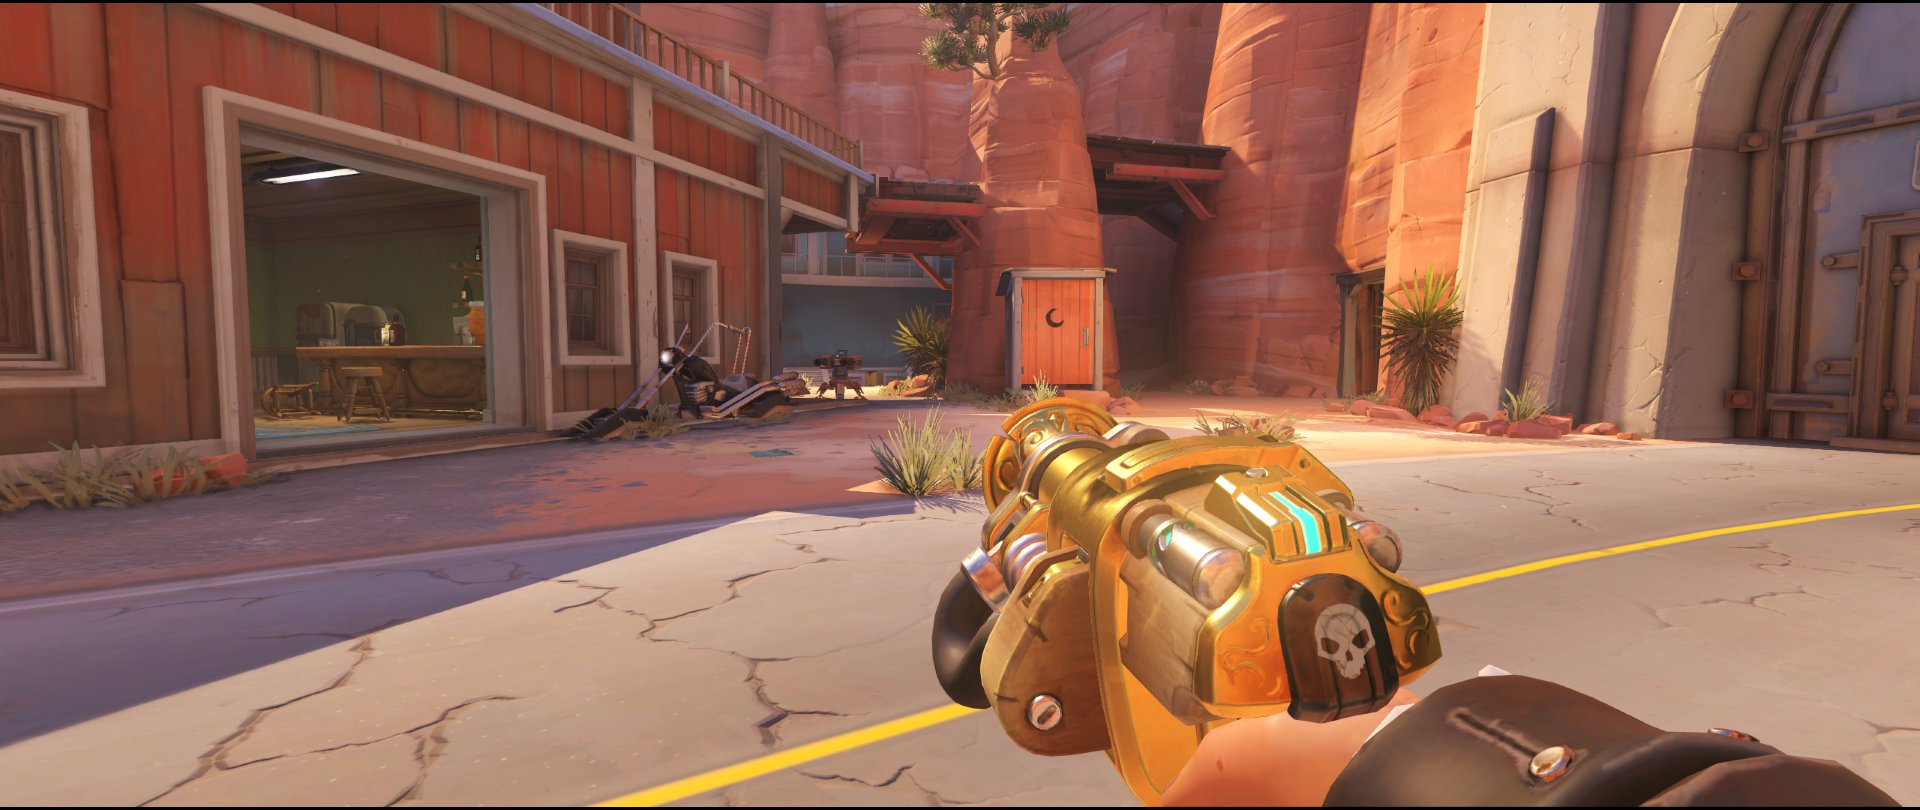 Next+to+Pub+and+Perch+turret+placement+Torbjorn+Route+66+Overwatch